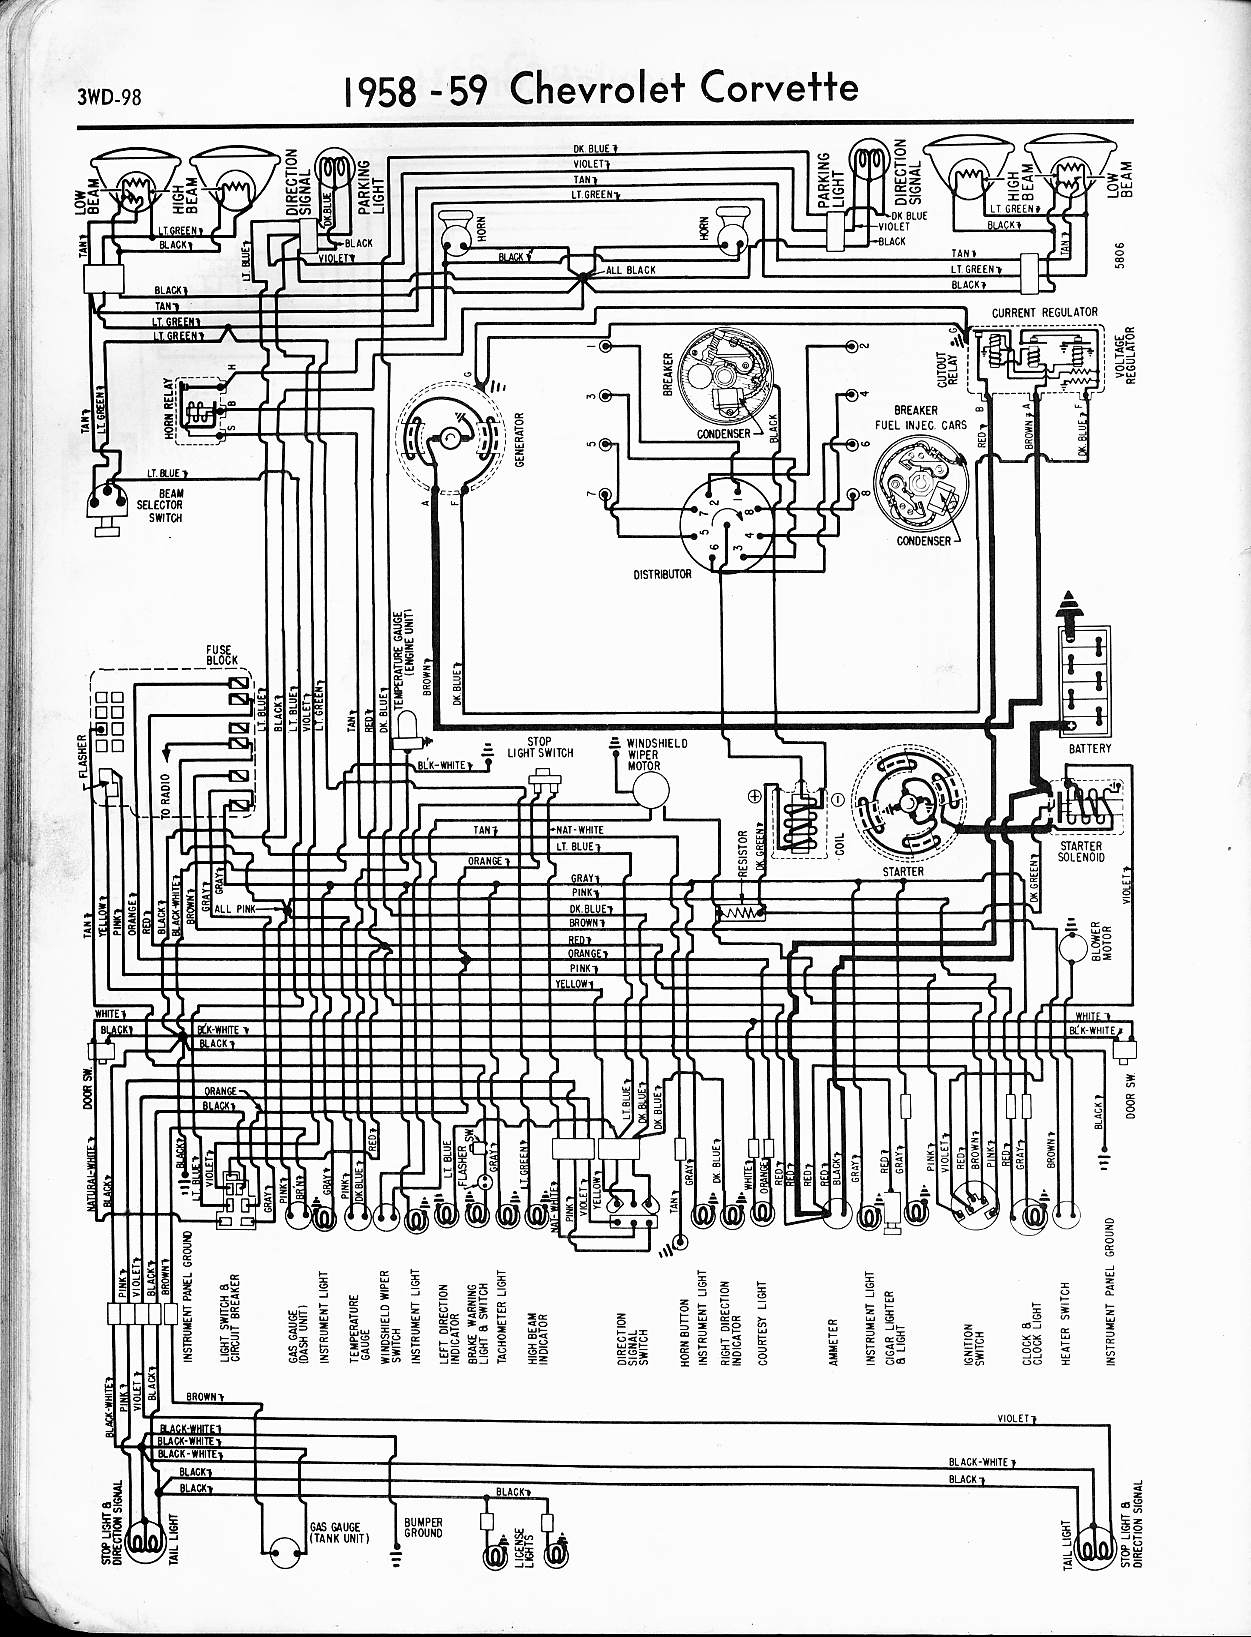 1979 chevy truck wiring schematic Download-1958 Corvette 18-n